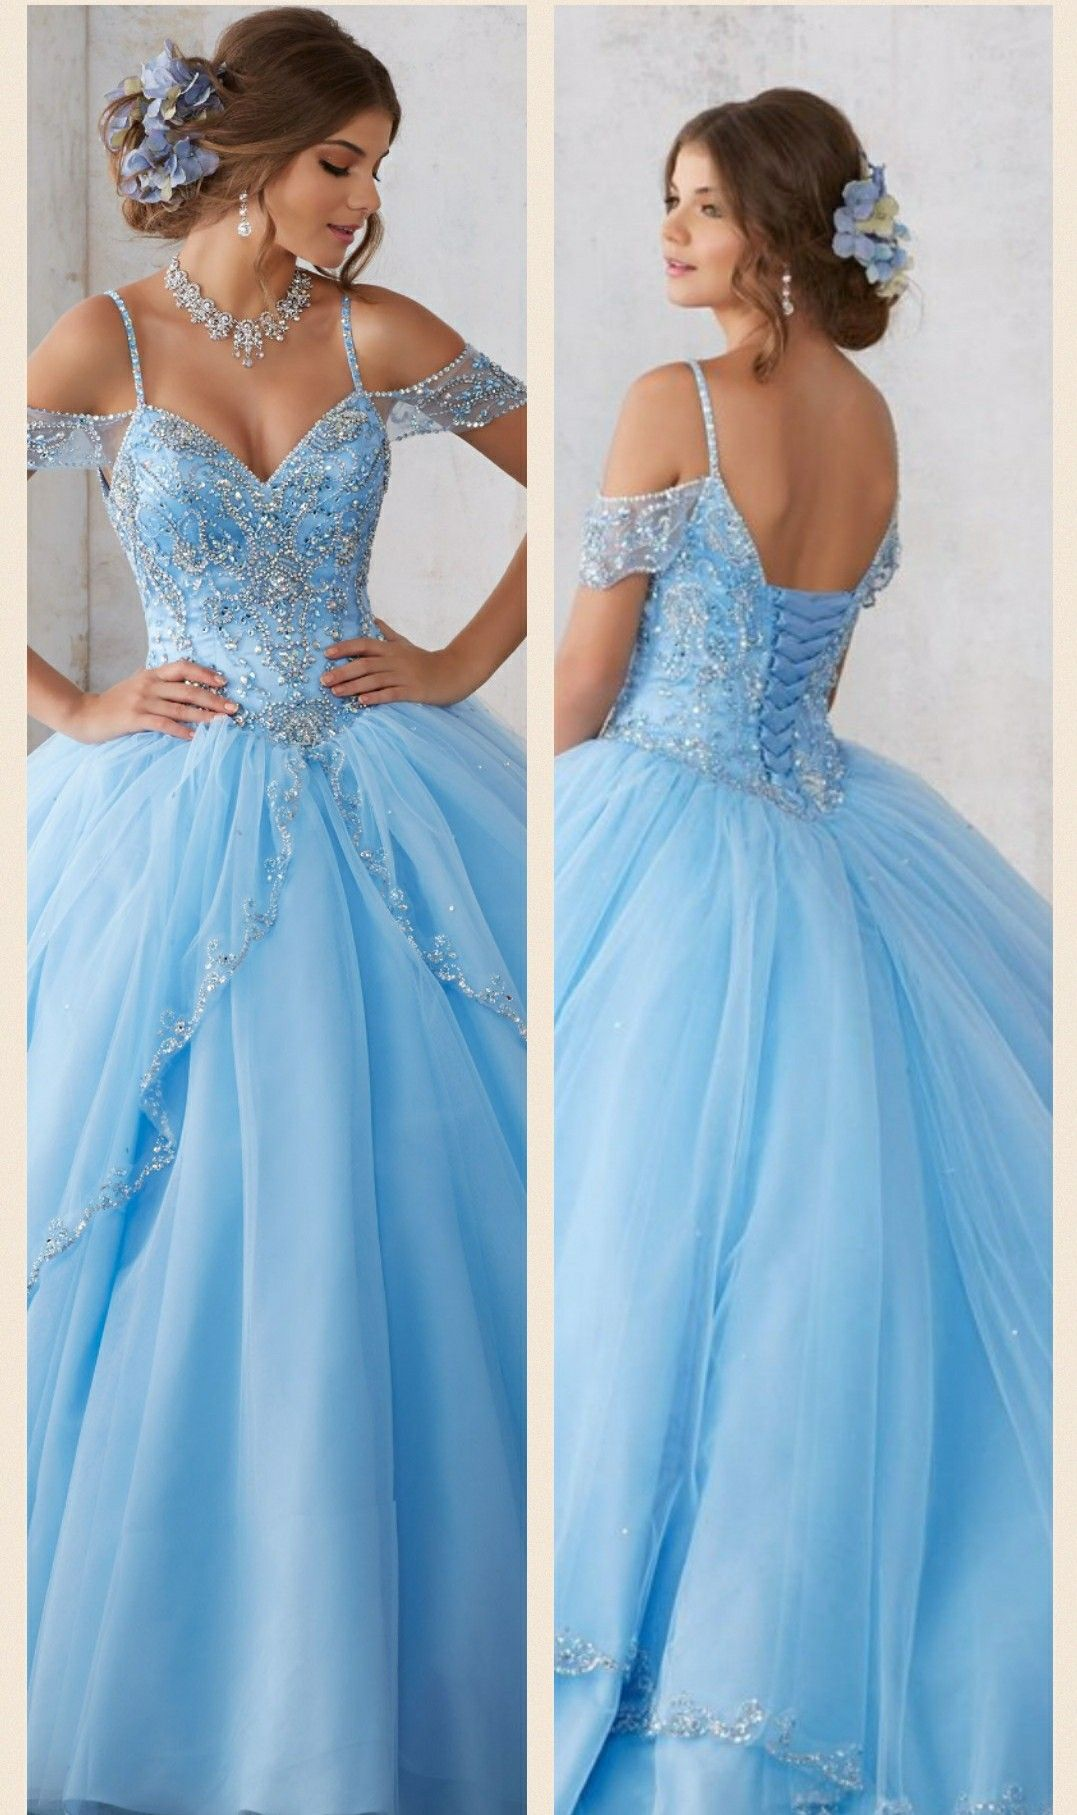 Elegant Bahama Blue Off The Shoulder Quinceanera Dress With Cap Sleeves Other Available Colo Backless Dress Formal Formal Dresses Long Japanese Street Fashion [ 1815 x 1077 Pixel ]